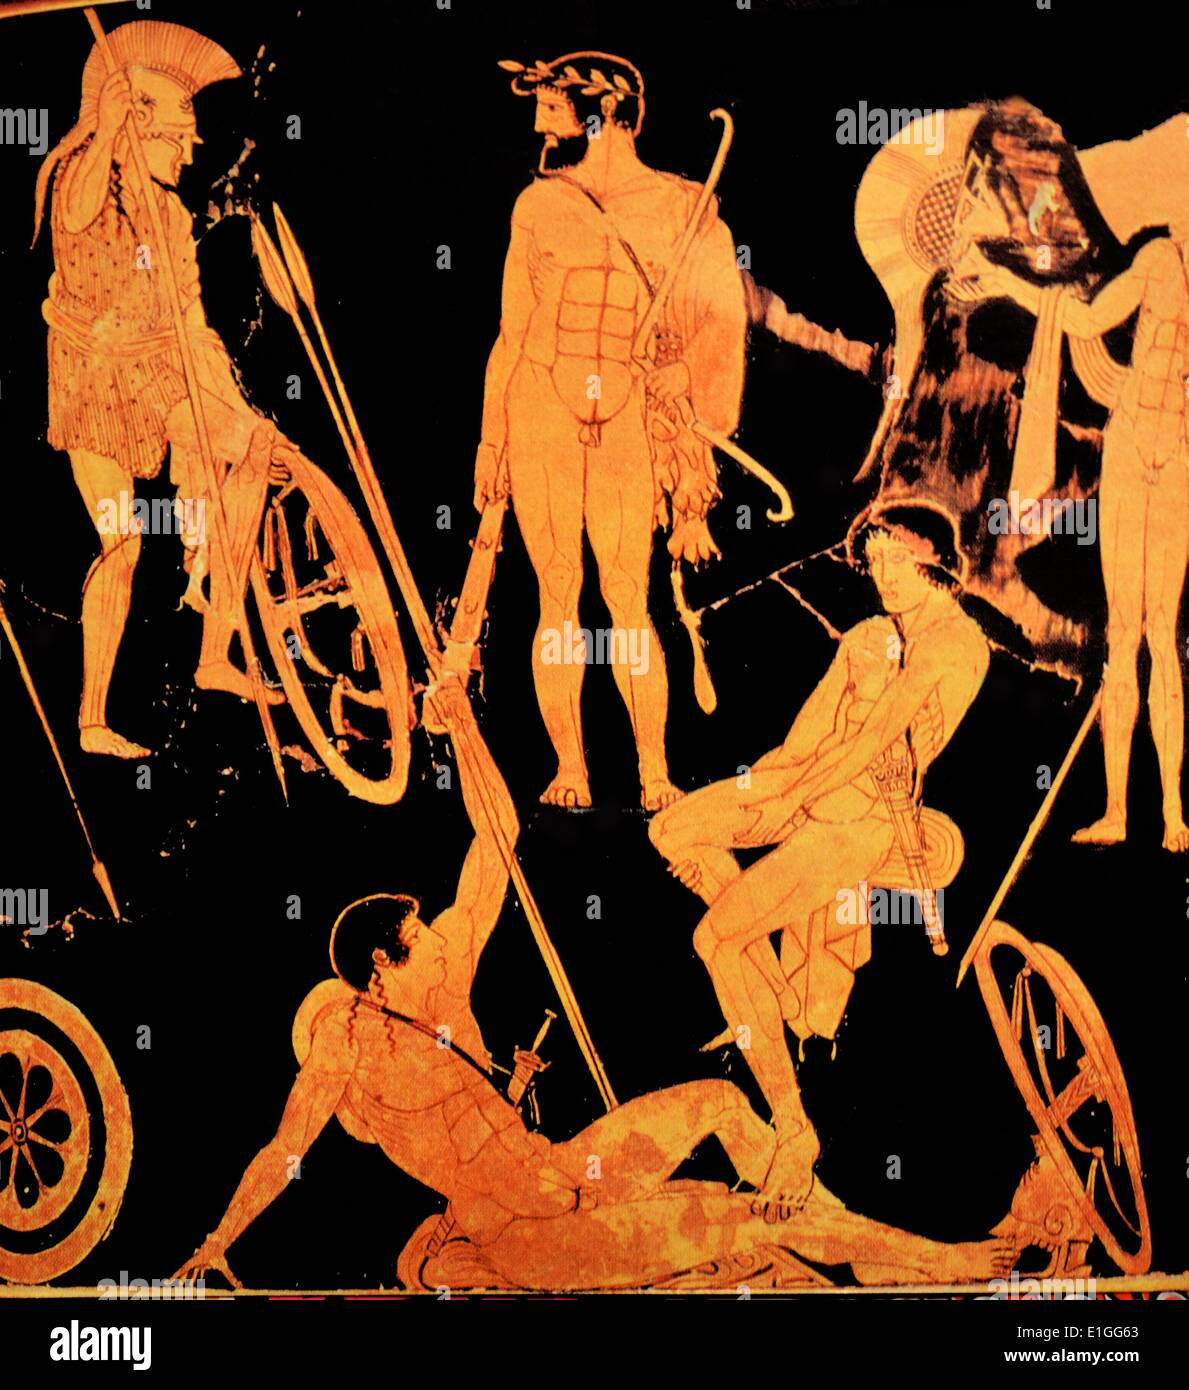 Detail from a Greek attic krater depicting Heracles and Argonauts from Orvieto, Italy, 475 B.C. - Stock Image